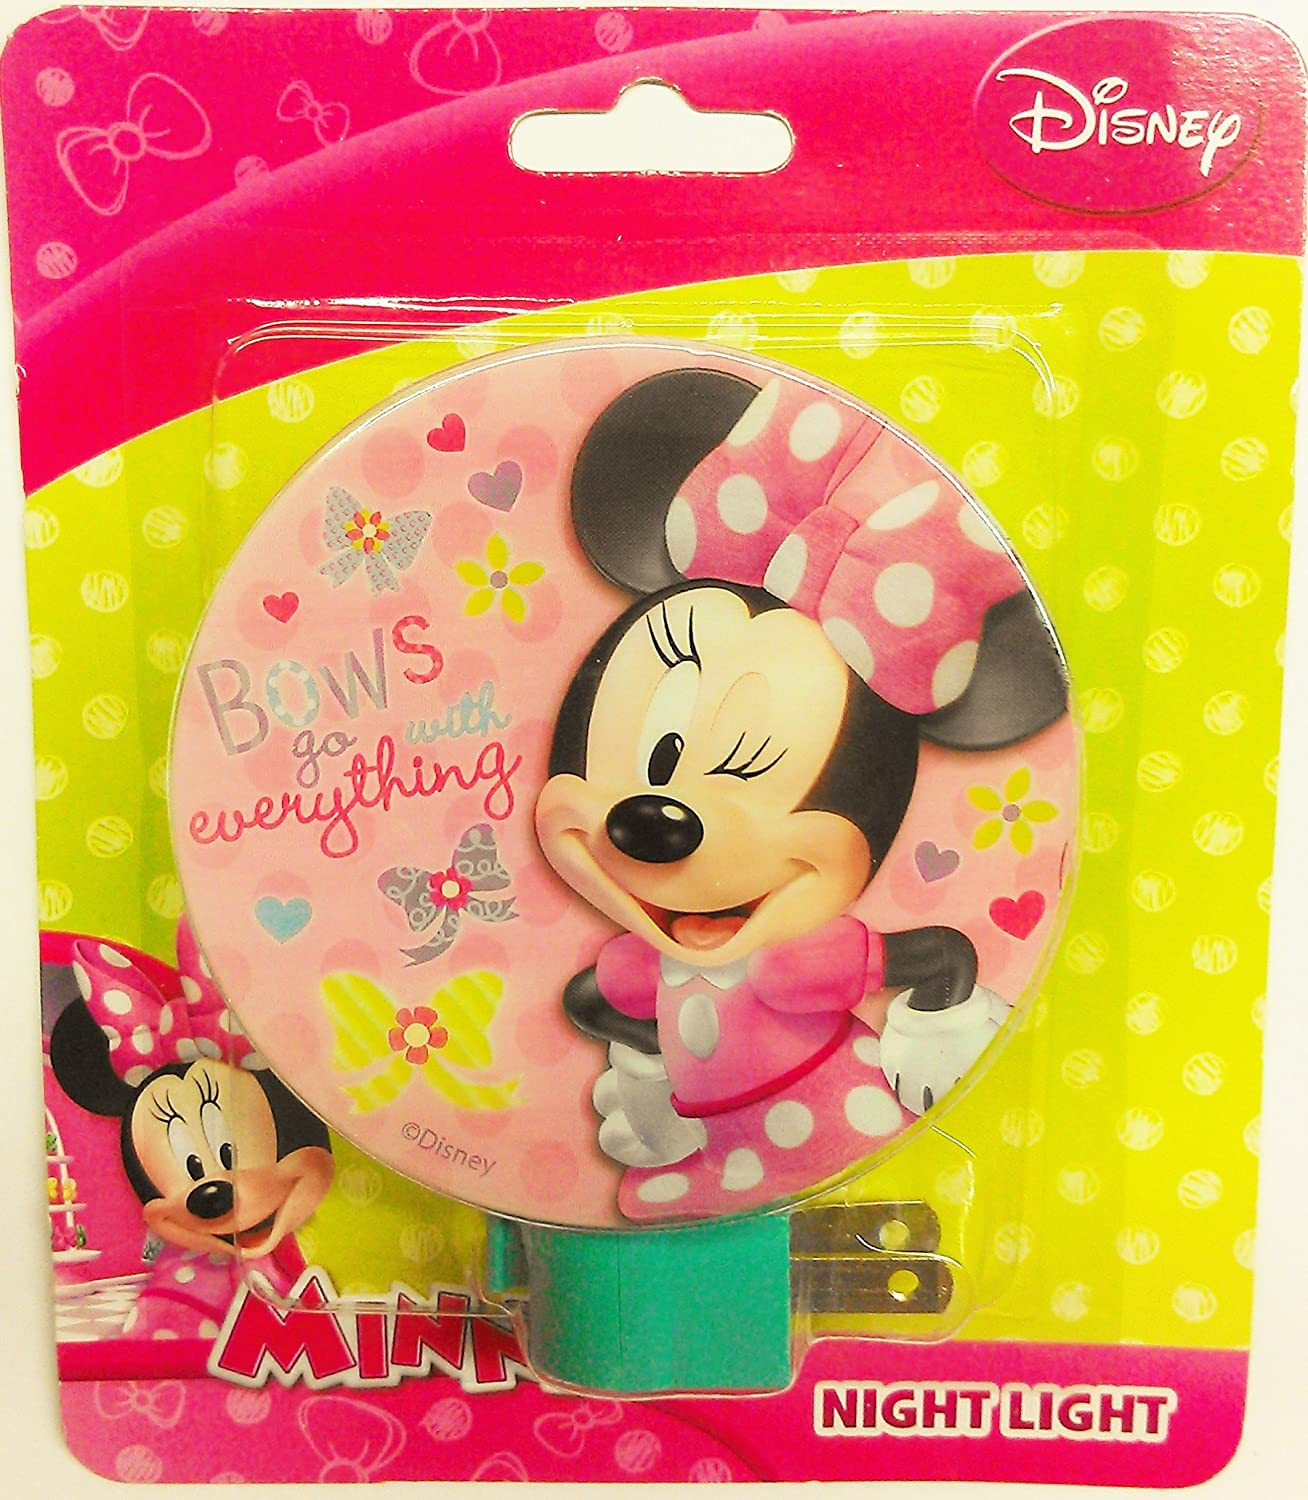 Boys Room Night Light Minnie Mouse Pink Nightlight Baby Nursery Girls Bedroom